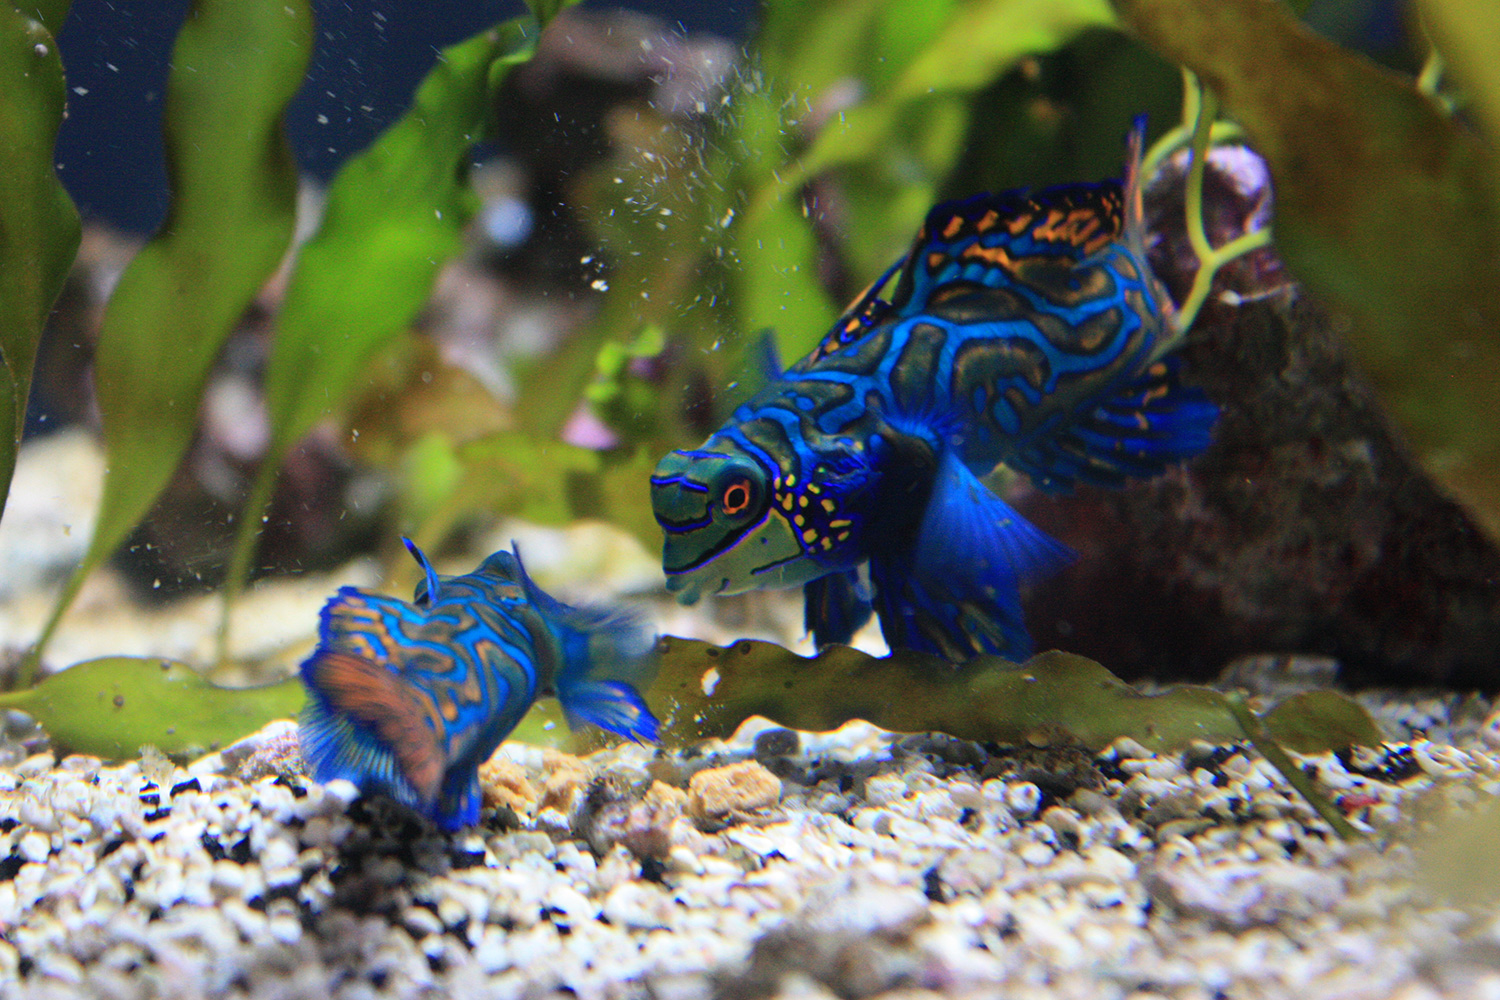 A pair of tiny mandarin dragonets from the Philippines on display at the Steinhart Aquarium in the California Academy of Sciences.  (Photo by Astrid M. Barros)